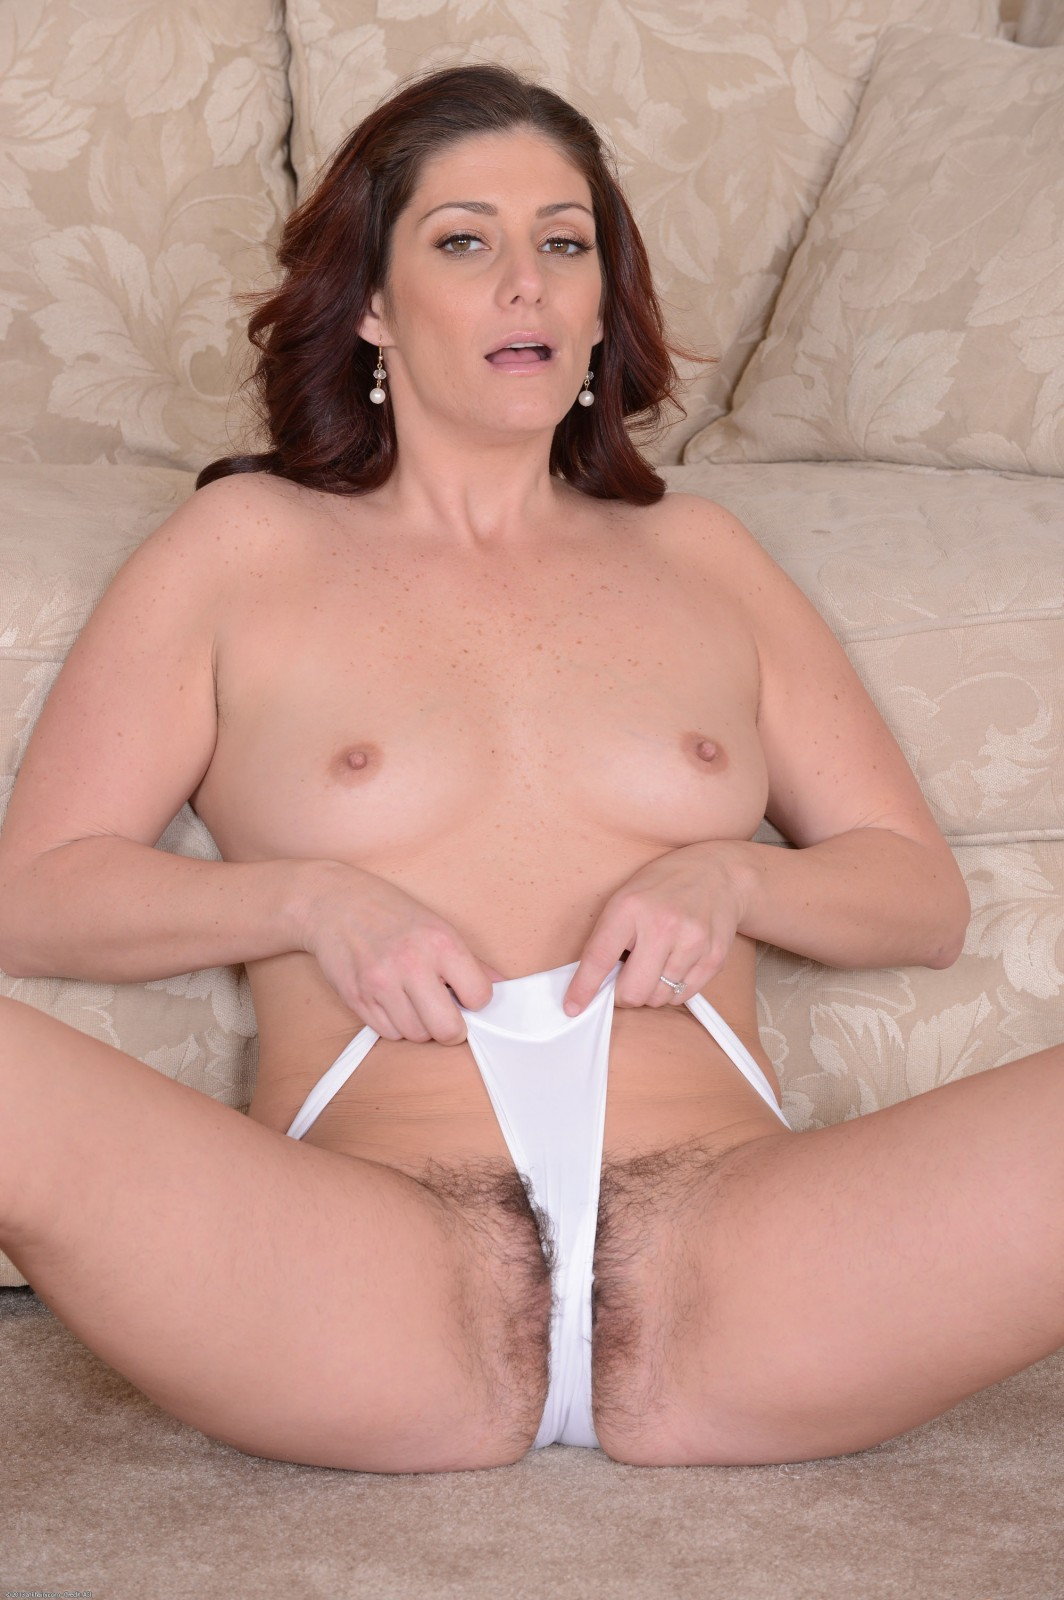 Alicia silver plays with her pubes and shows off 10